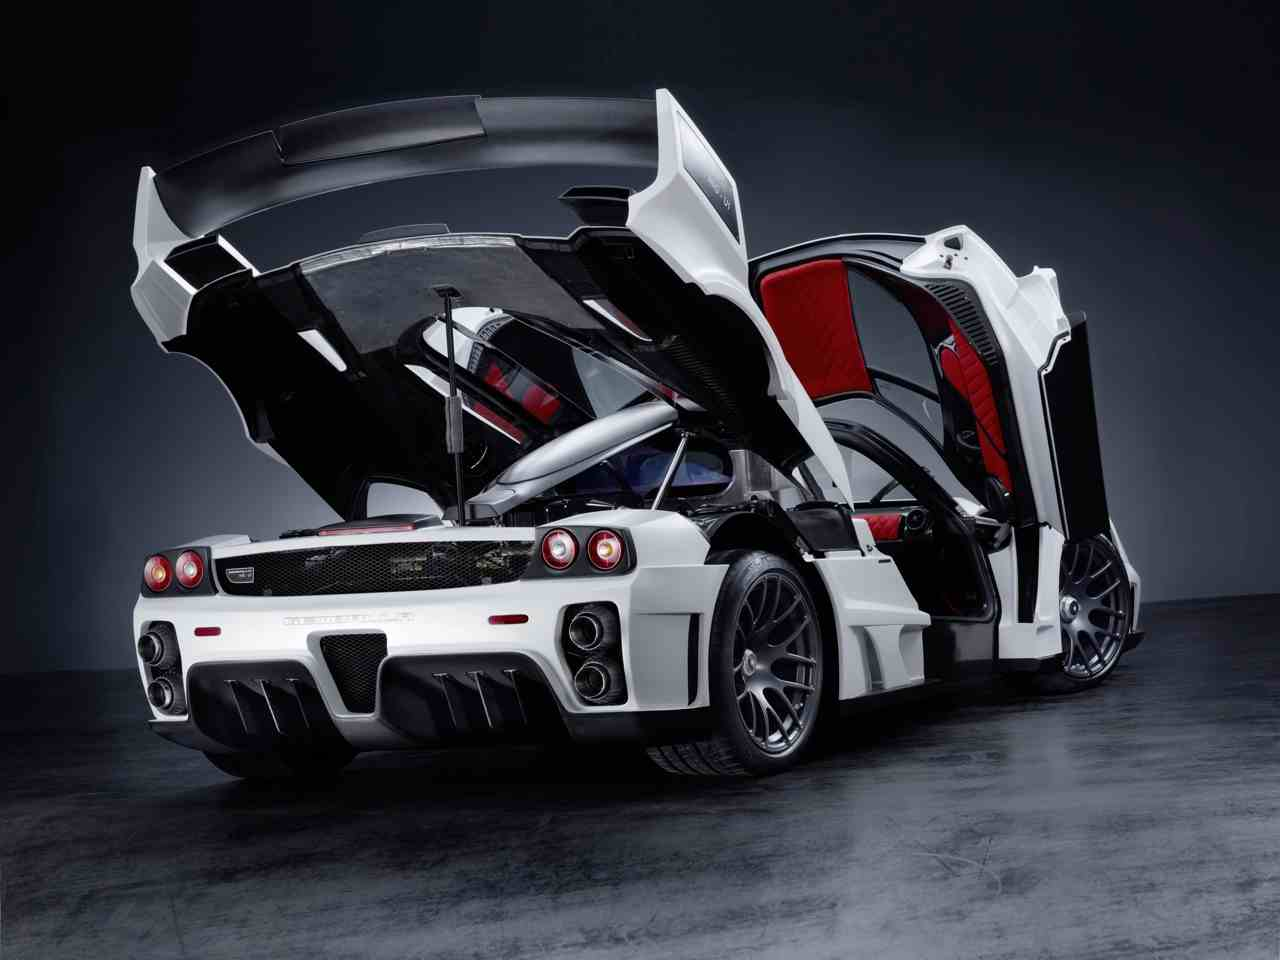 2011 Gemballa MIG-U1 Luxe Super Cars Review and Photos